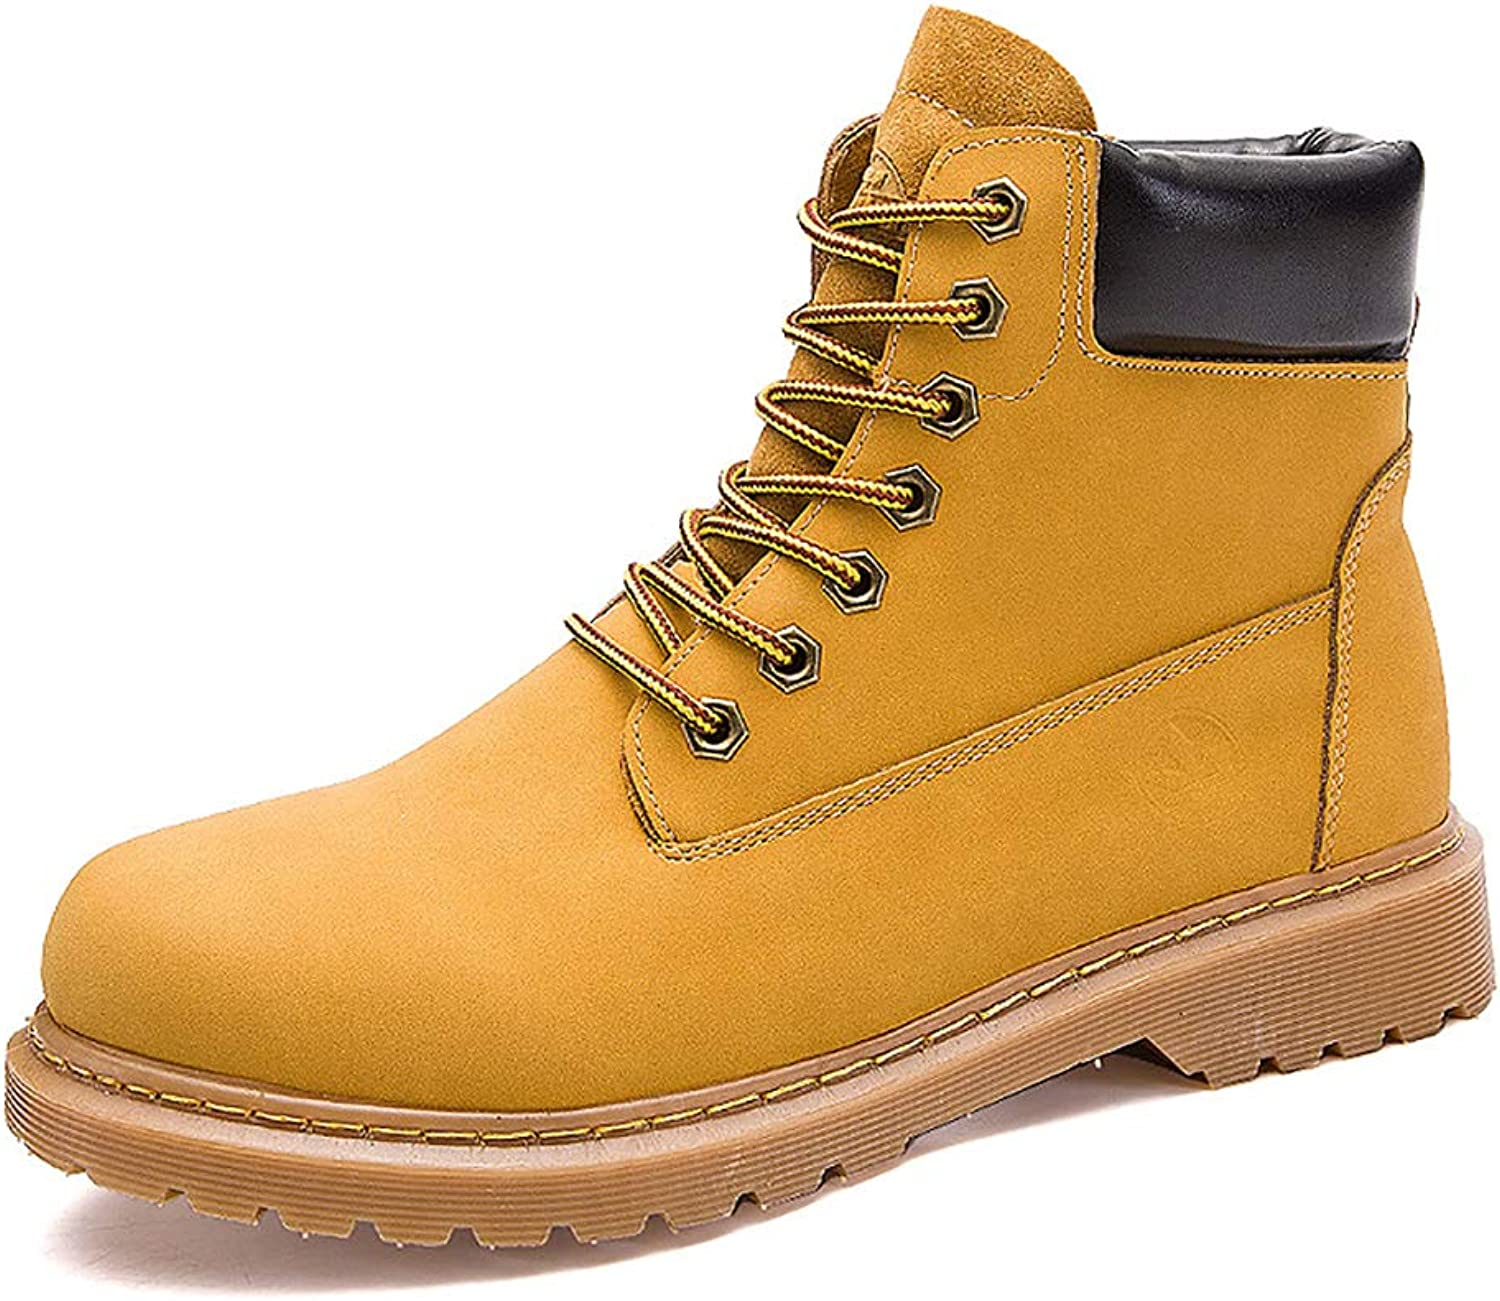 TTRR Martin boots male couple rhubarb shoes big head tooling shoes men casual wild outdoor England high-top boots (color   Yellow, Size   44)